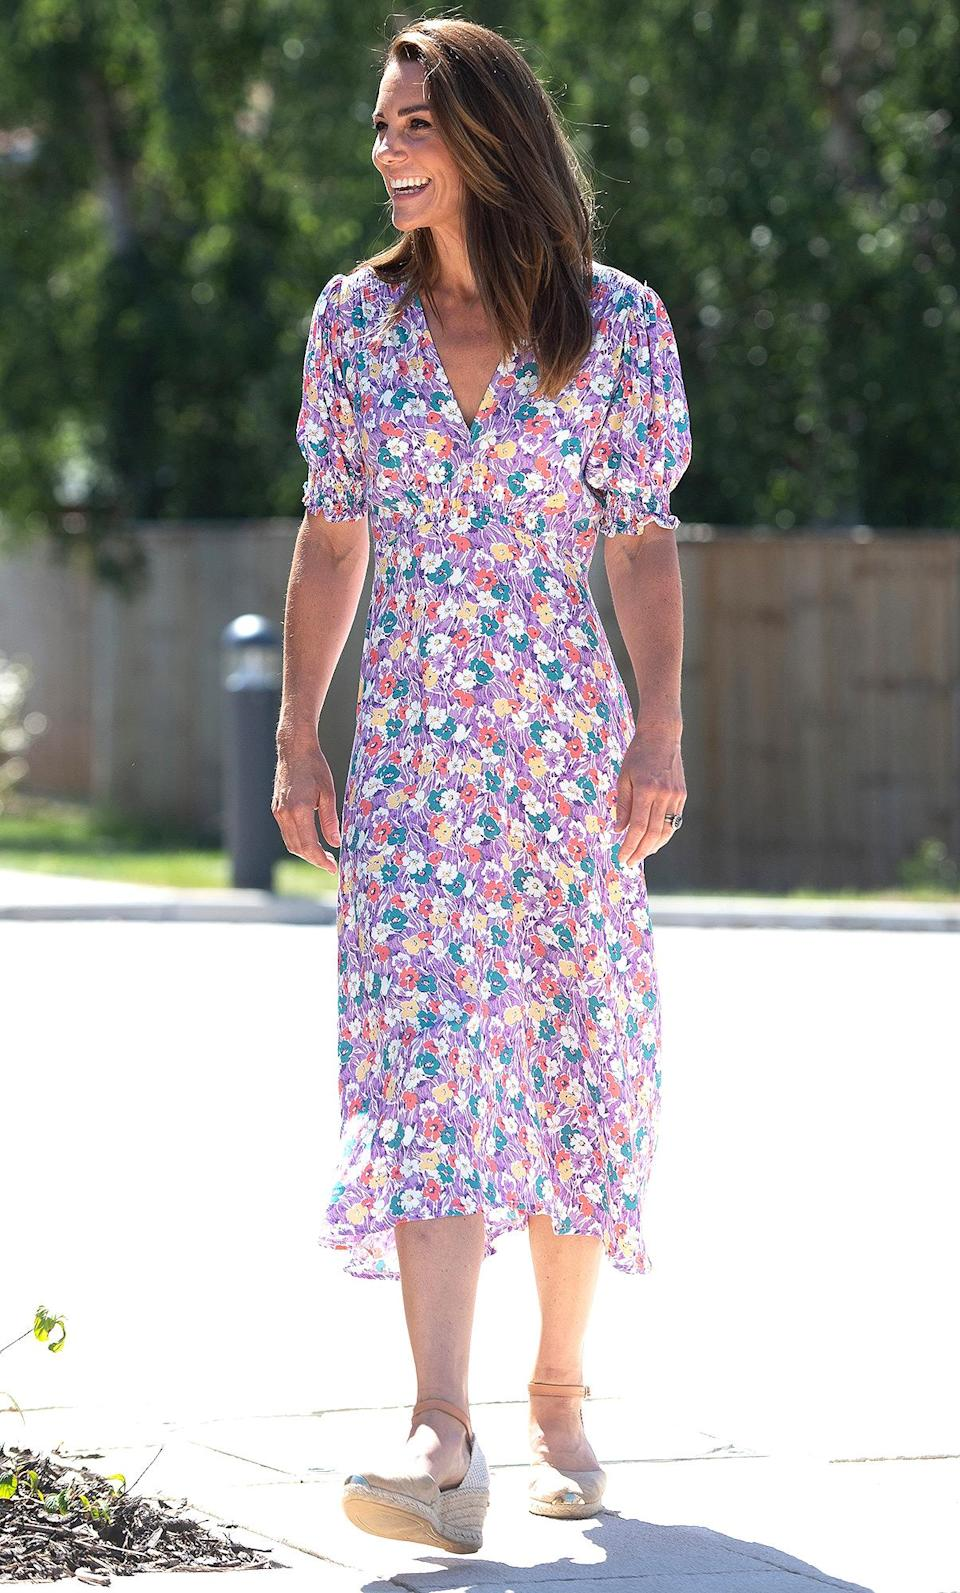 """<p>Kate Middleton knows there is no such thing as having too many floral sundresses in your closet — it's a summer staple. </p> <p><strong>Buy It! Faithfull the Brand's Marie-Louise Midi Dress, <a href=""""https://faithfullthebrand.com/products/marie-louise-midi-dress-nefeli-floral?variant=31457194803264"""" rel=""""sponsored noopener"""" target=""""_blank"""" data-ylk=""""slk:$189"""" class=""""link rapid-noclick-resp"""">$189</a></strong></p> <p><strong>Get the Look!<br>Banana Republic Ruffle Midi Dress, <a href=""""https://bananarepublicfactory.gapfactory.com/browse/product.do?pid=666532001#pdp-page-content"""" rel=""""sponsored noopener"""" target=""""_blank"""" data-ylk=""""slk:$110"""" class=""""link rapid-noclick-resp"""">$110</a><br>Lulu's Free Spirits Dress, <a href=""""https://www.pntra.com/t/8-11575-131940-157915?sid=PEO11RoyalsInspiredGiftsYouNeedThisSummerpetitsRoyGal12744024202106I&url=https%3A%2F%2Fwww.lulus.com%2Fproducts%2Ffree-spirits-white-floral-print-short-sleeve-tiered-midi-dress%2F1454056.html"""" rel=""""sponsored noopener"""" target=""""_blank"""" data-ylk=""""slk:$88"""" class=""""link rapid-noclick-resp"""">$88</a><br>Old Navy Smocked Waist Floral Print Dress, <a href=""""https://gap.igs4ds.net/c/249354/383278/5555?subId1=PEO11RoyalsInspiredGiftsYouNeedThisSummerpetitsRoyGal12744024202106I&u=https%3A%2F%2Foldnavy.gap.com%2Fbrowse%2Fproduct.do%3Fpid%3D690739012%23pdp-page-content"""" rel=""""sponsored noopener"""" target=""""_blank"""" data-ylk=""""slk:$45"""" class=""""link rapid-noclick-resp"""">$45</a><br></strong></p>"""